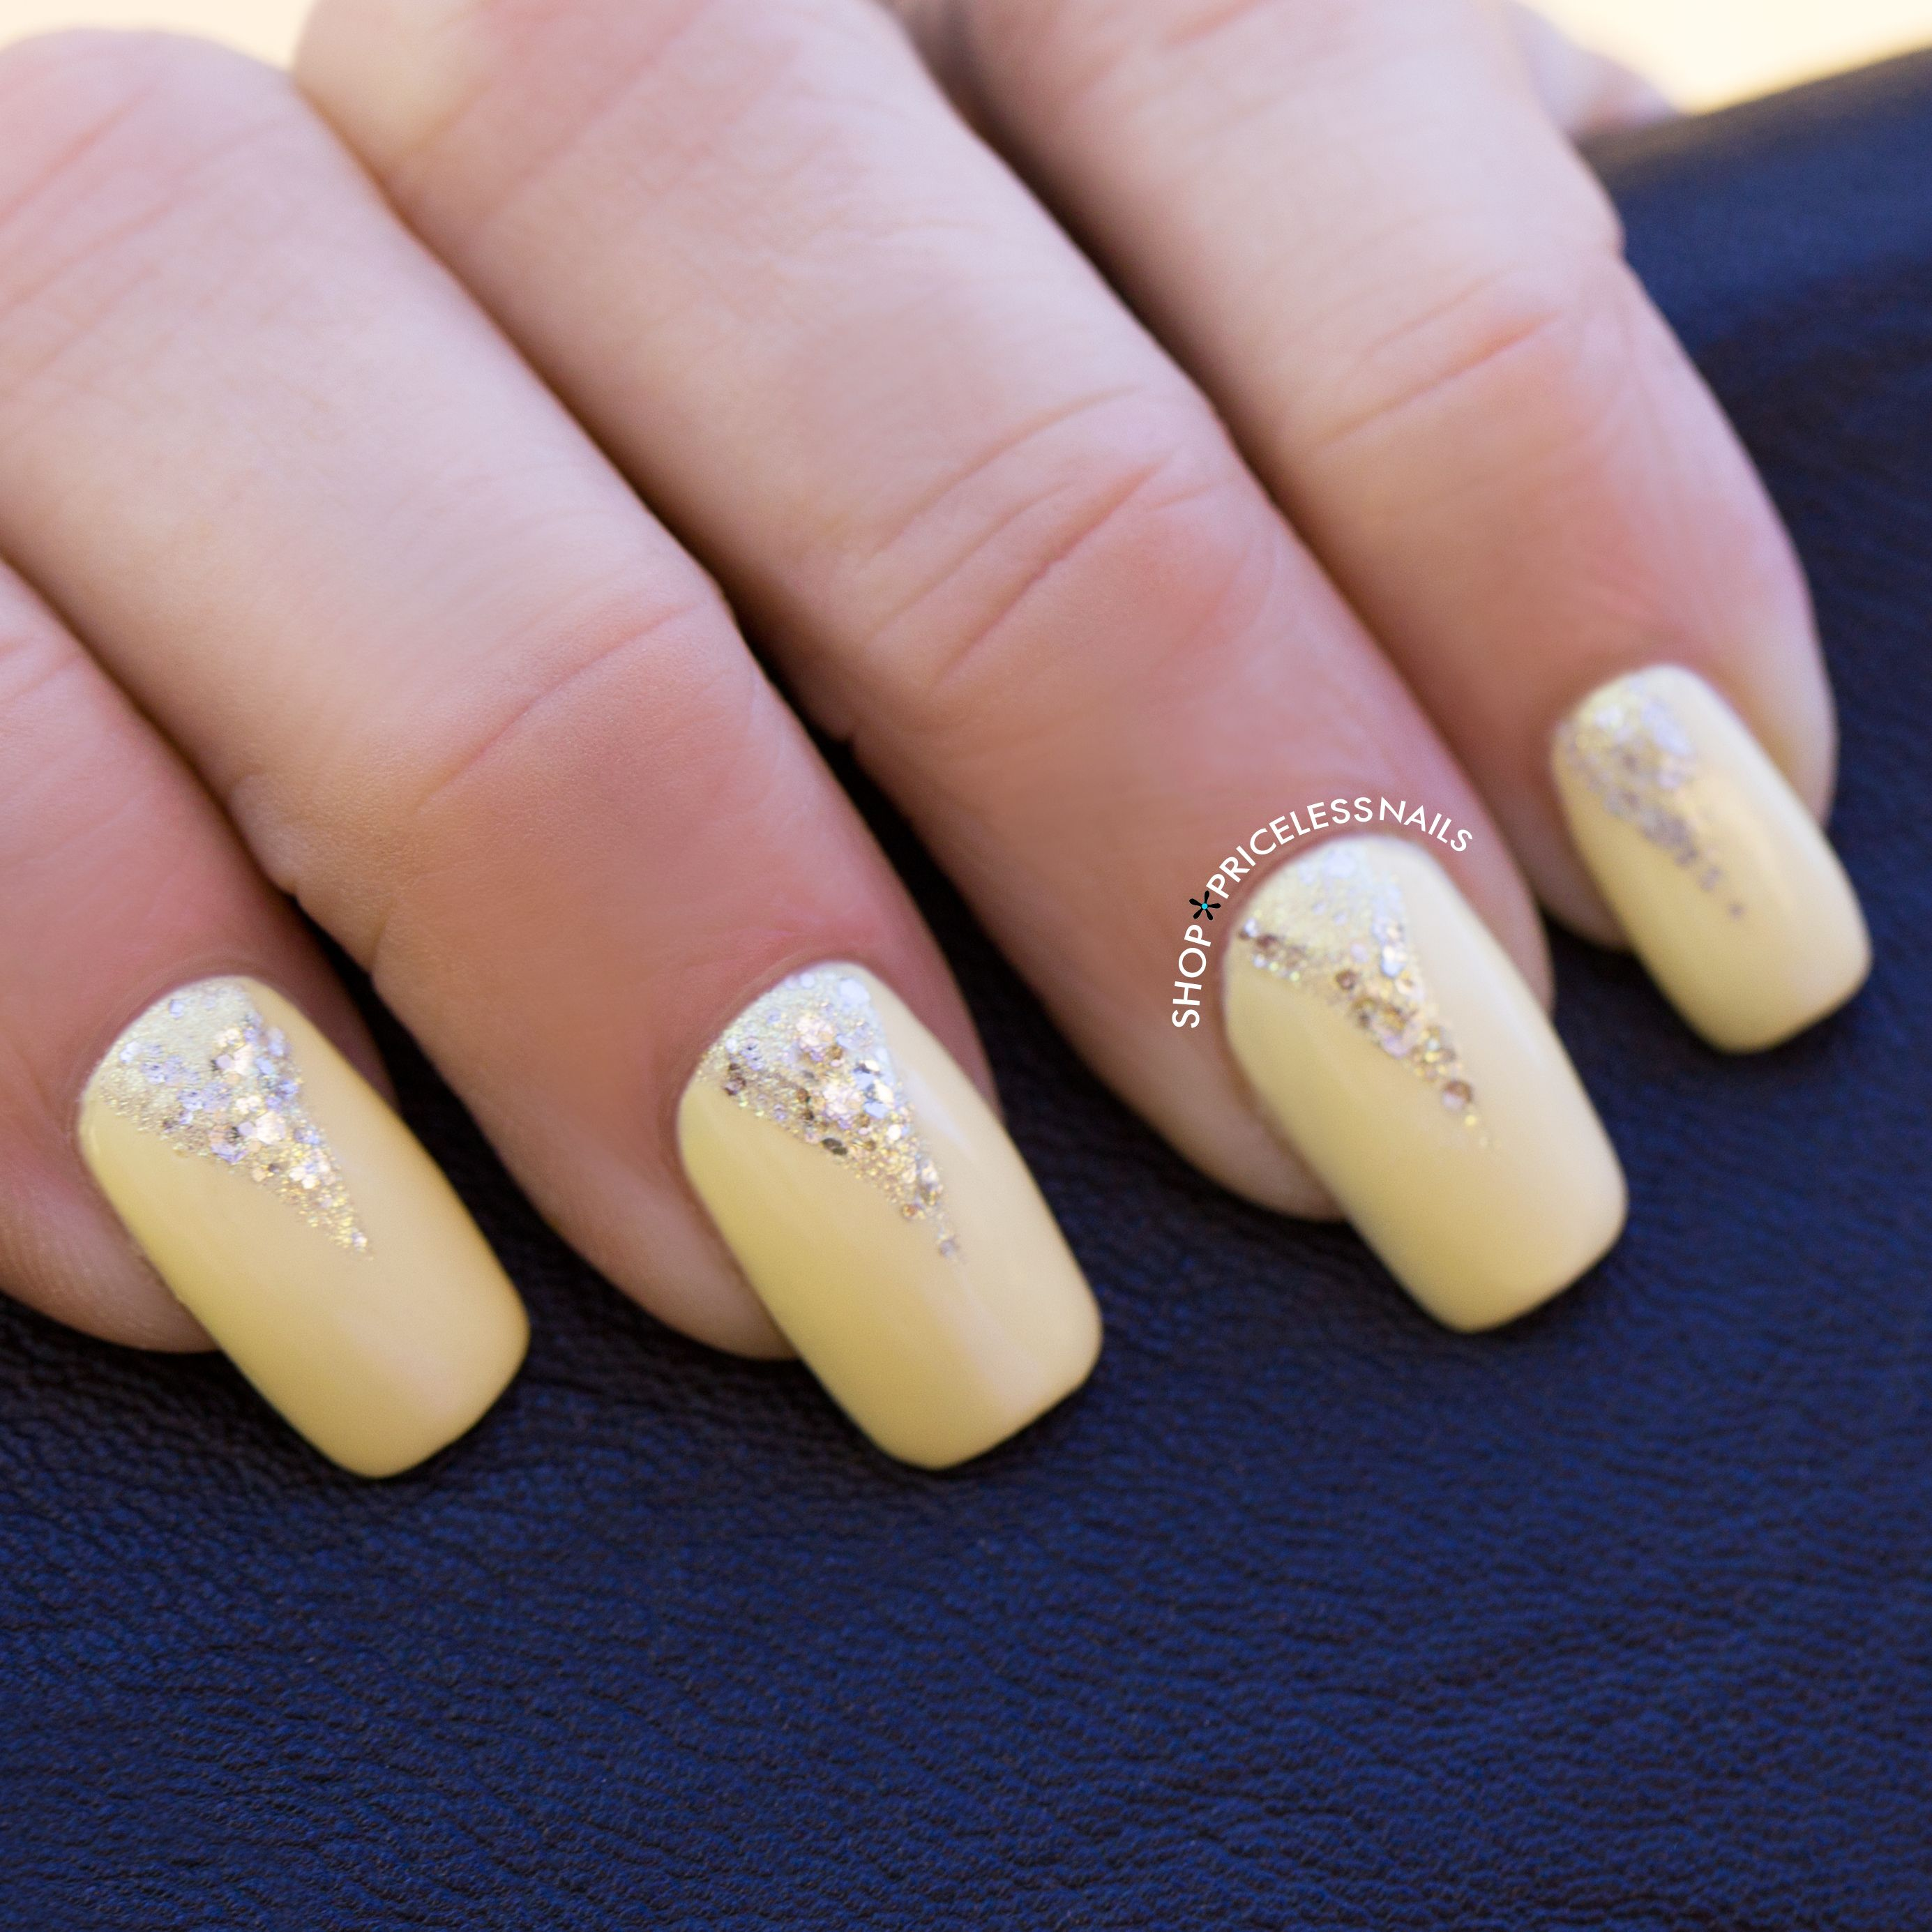 Brighten up your day with a pastel yellow mani!